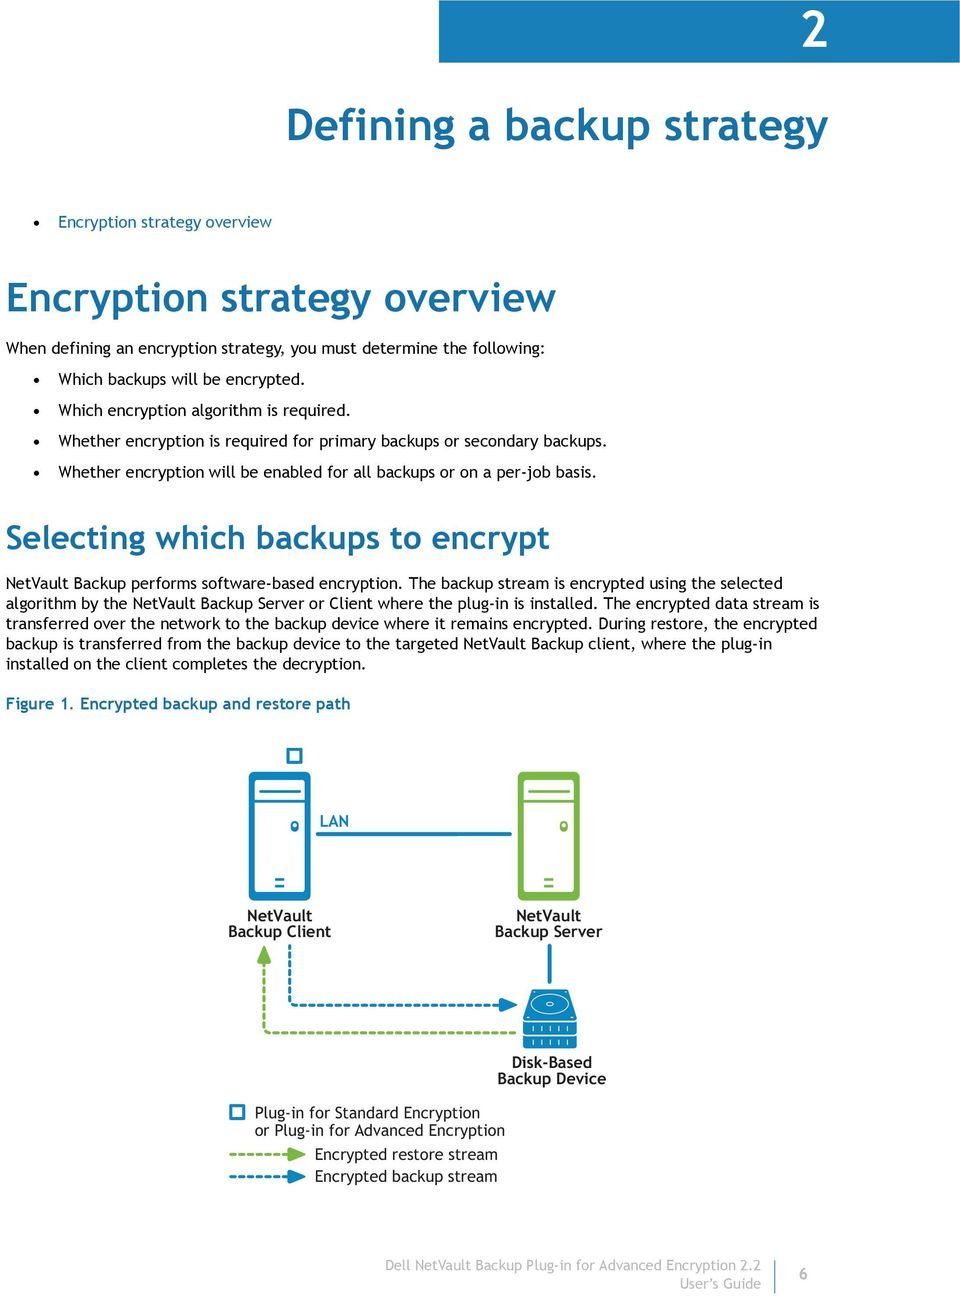 Selecting which backups to encrypt Backup performs software-based encryption. The backup stream is encrypted using the selected algorithm by the Backup Server or Client where the plug-in is installed.